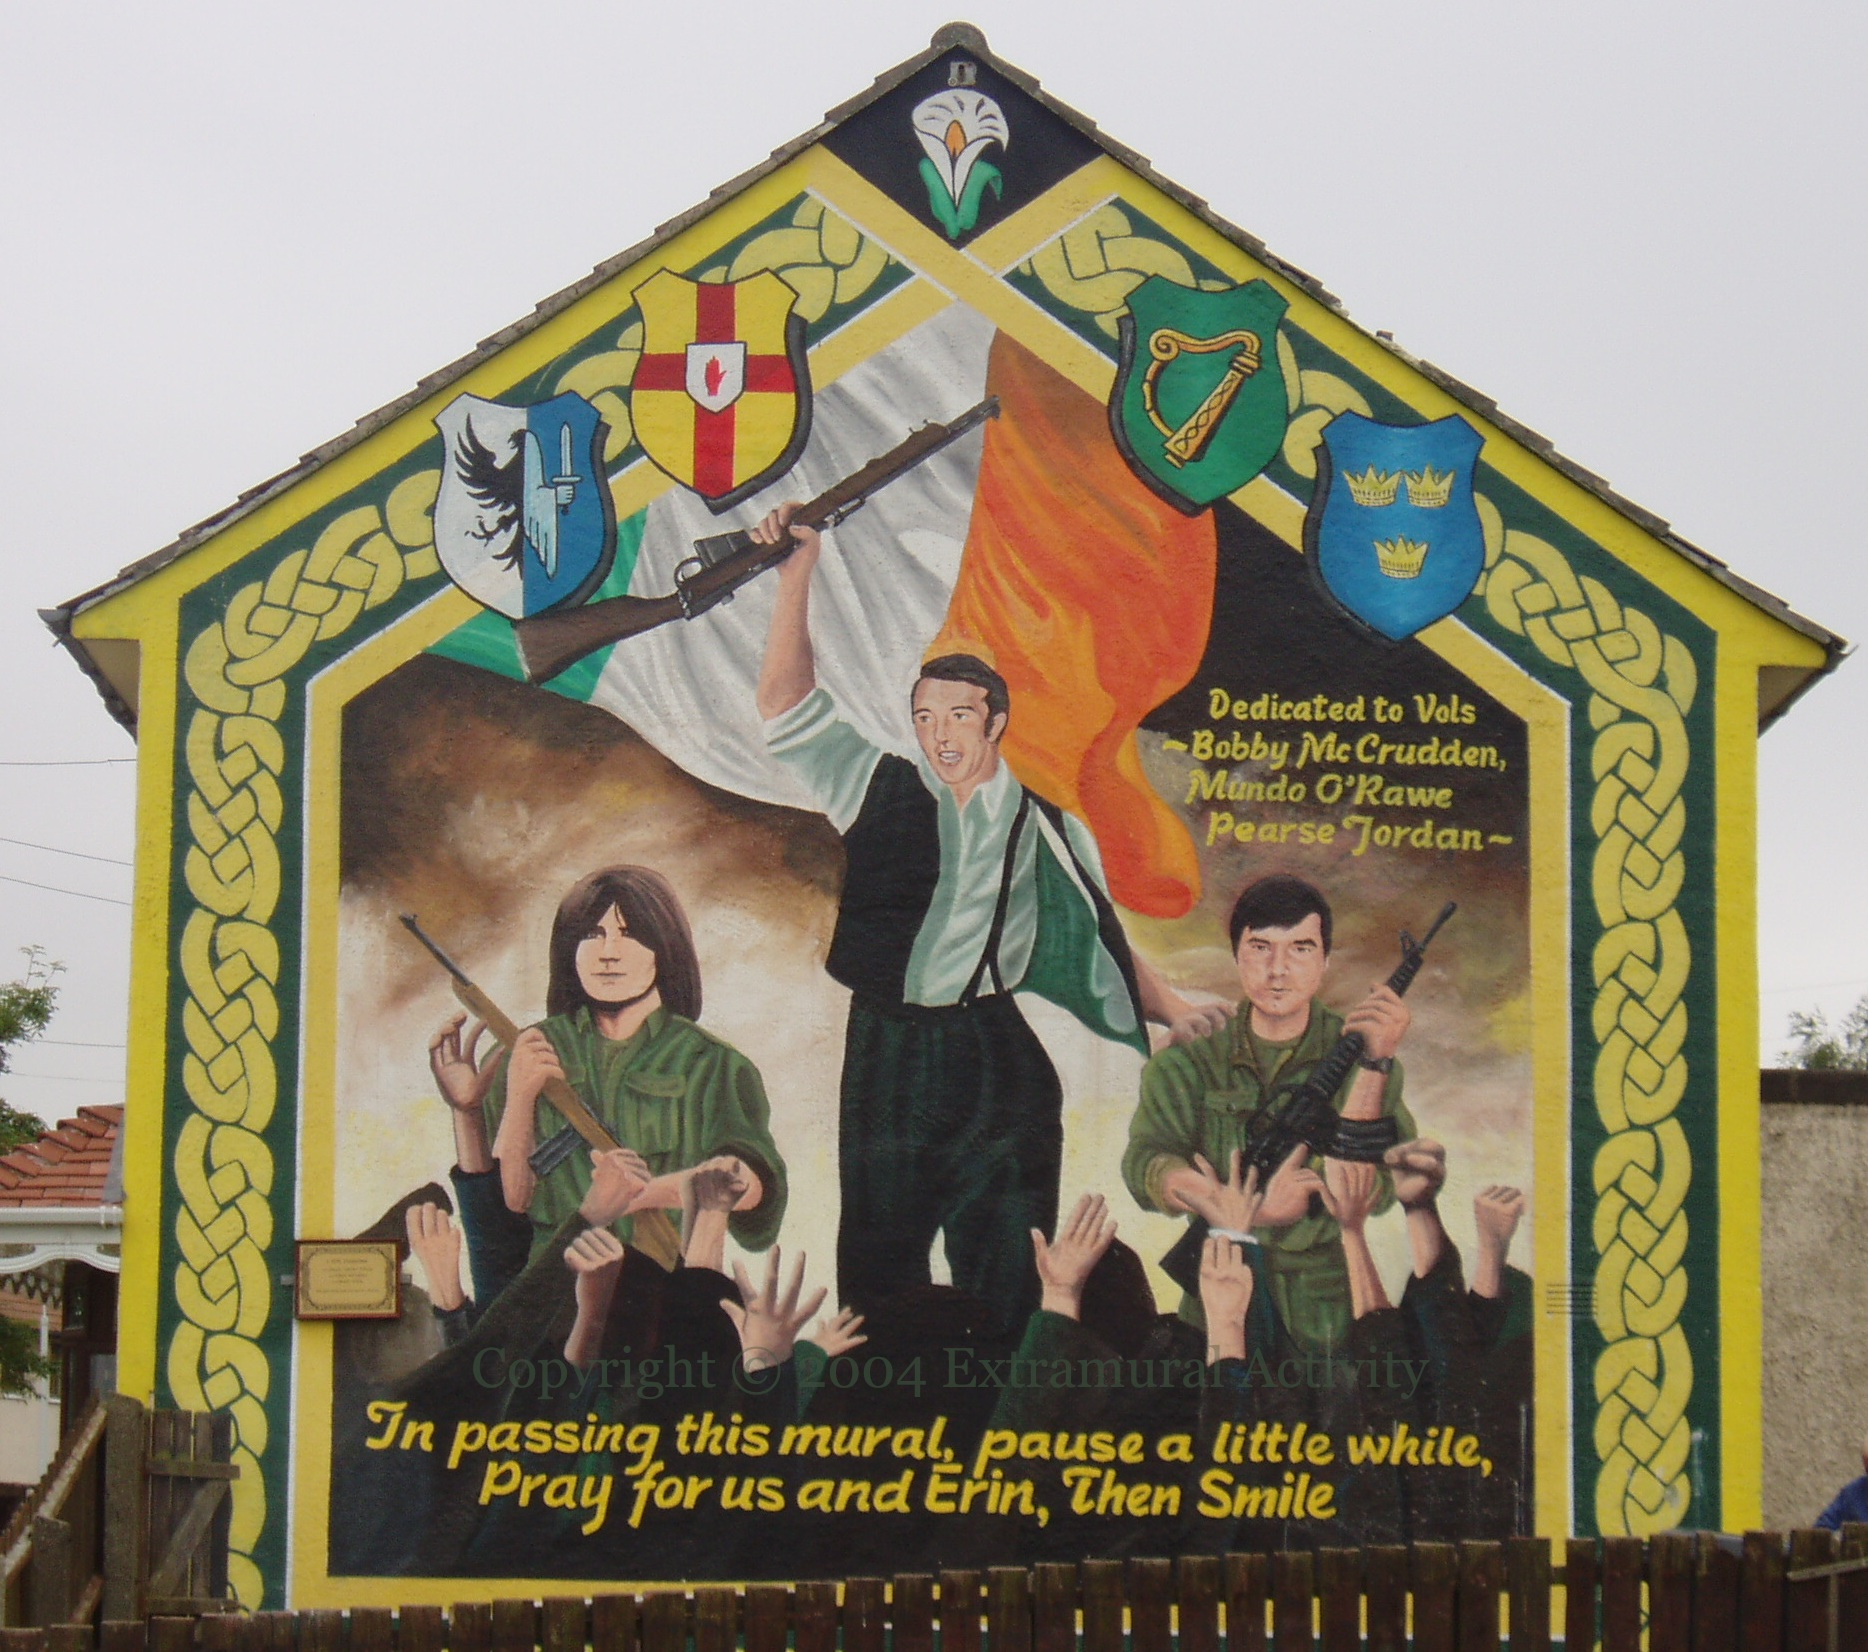 July 2004 extramural activity page 3 for Easter rising mural